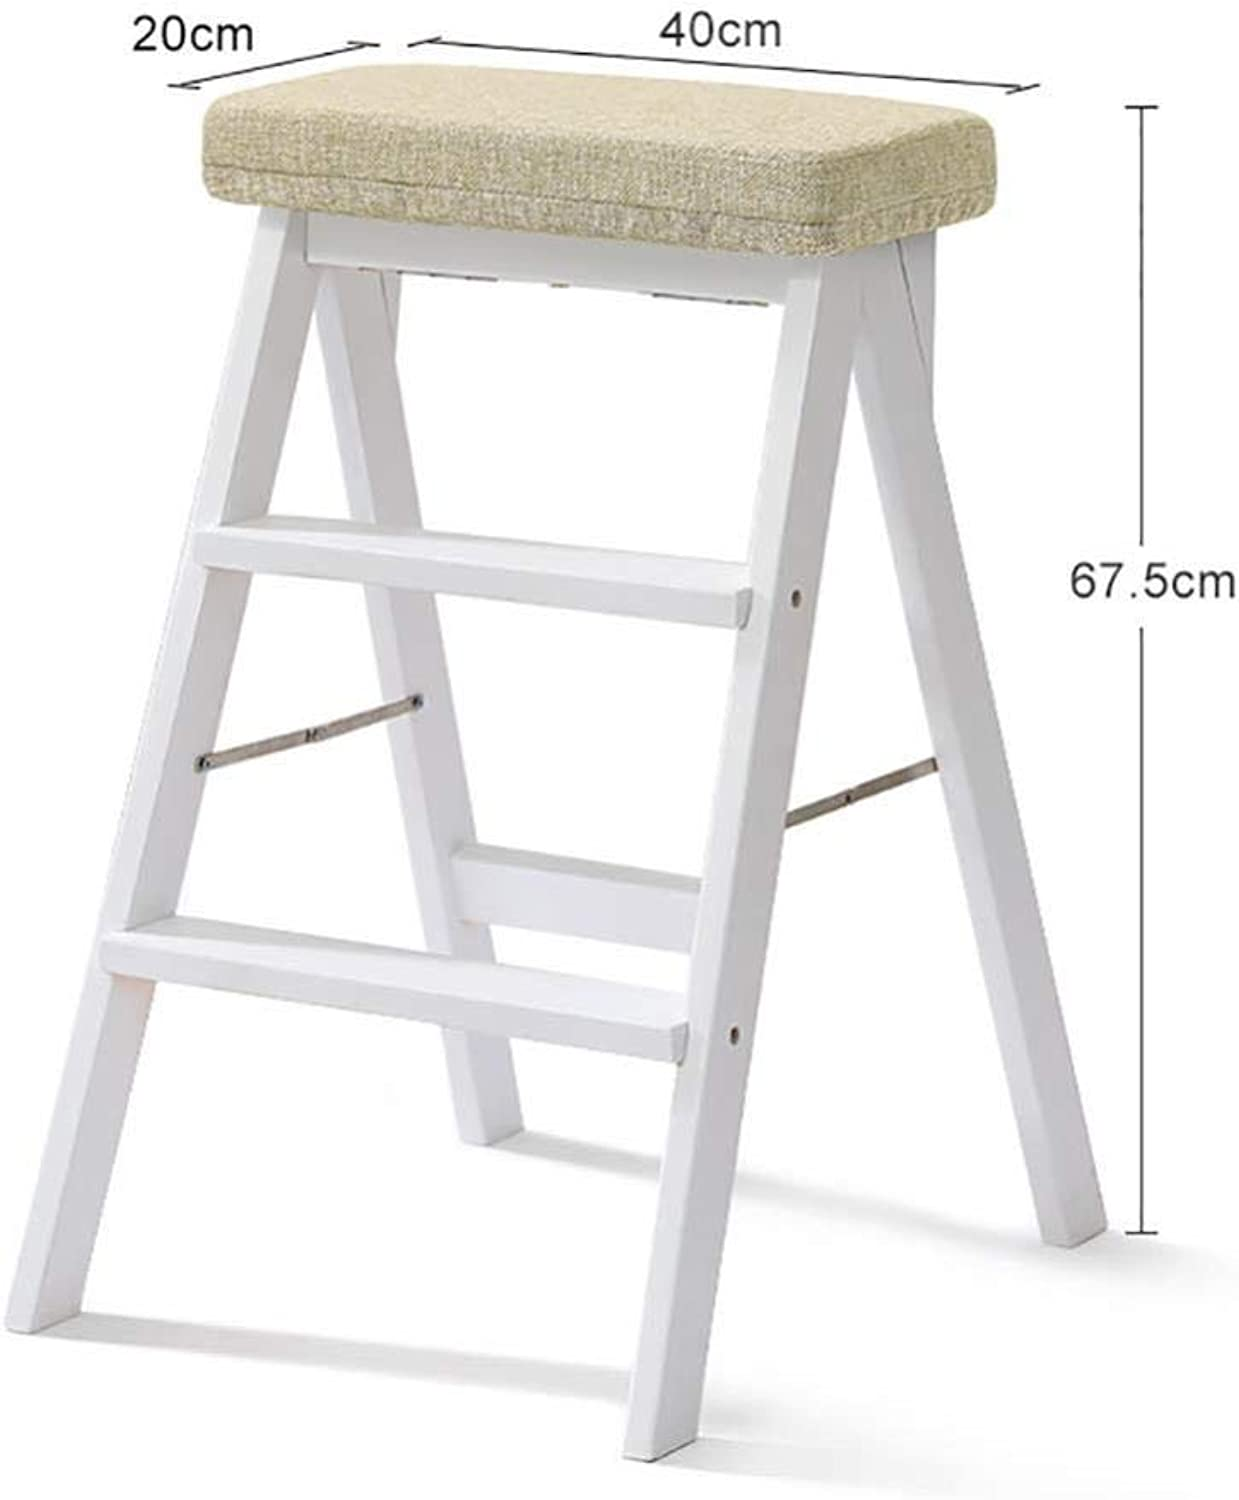 Step Stool White Solid Wooden Ladder Ladder for Adults Wooden Kitchen Ladder Portable Folding Foot Stool-Stool Bench Together stepladders Step Stool (color   D)